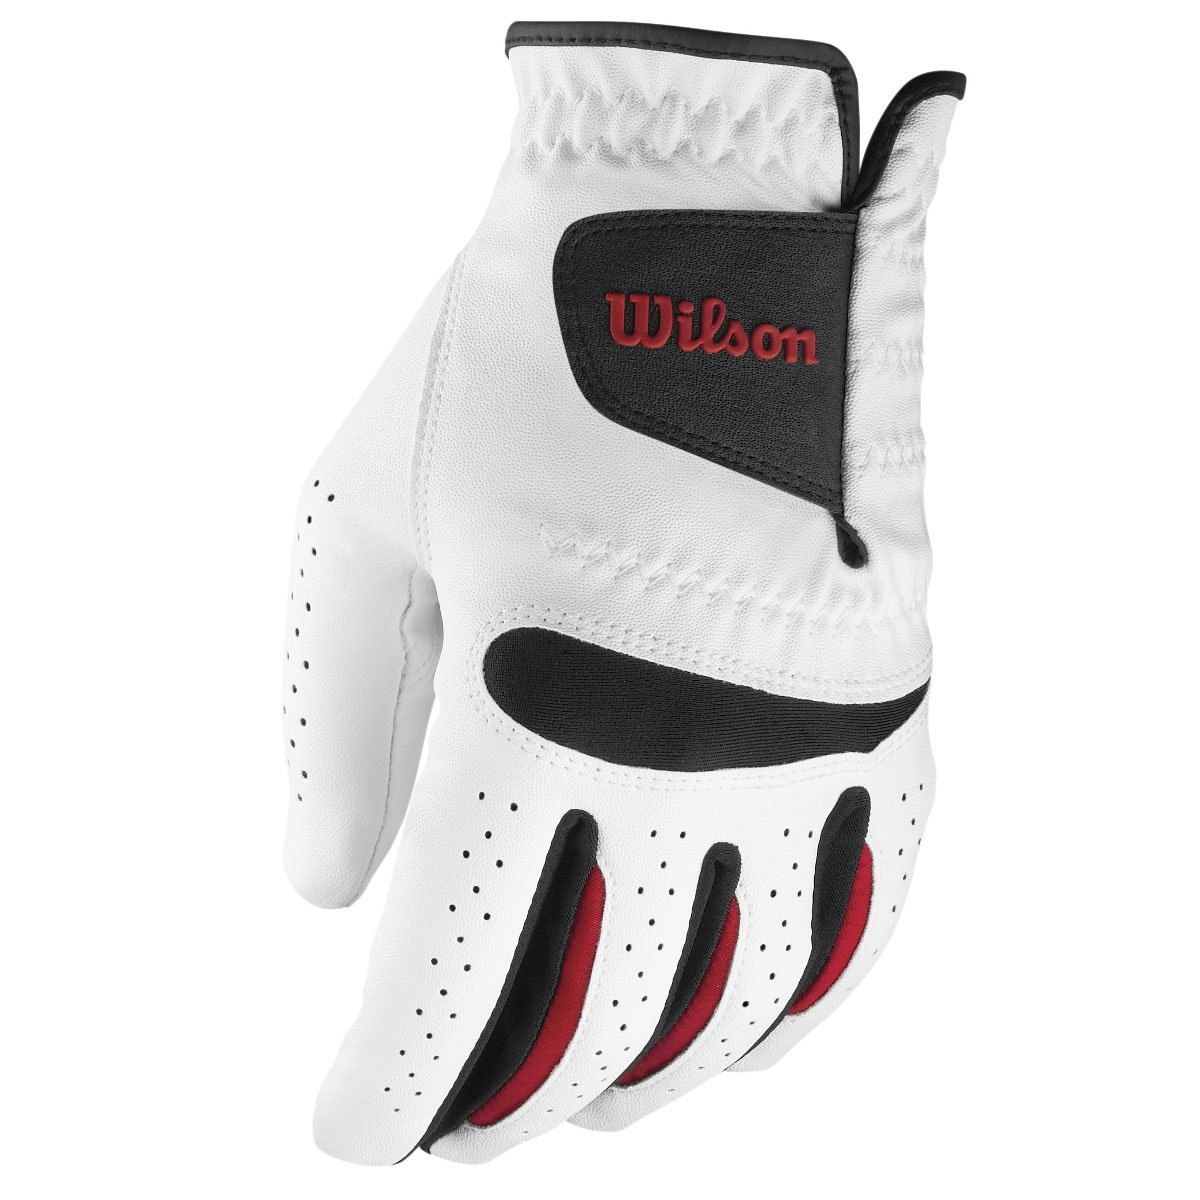 Mens gloves sports direct - Best Sellers